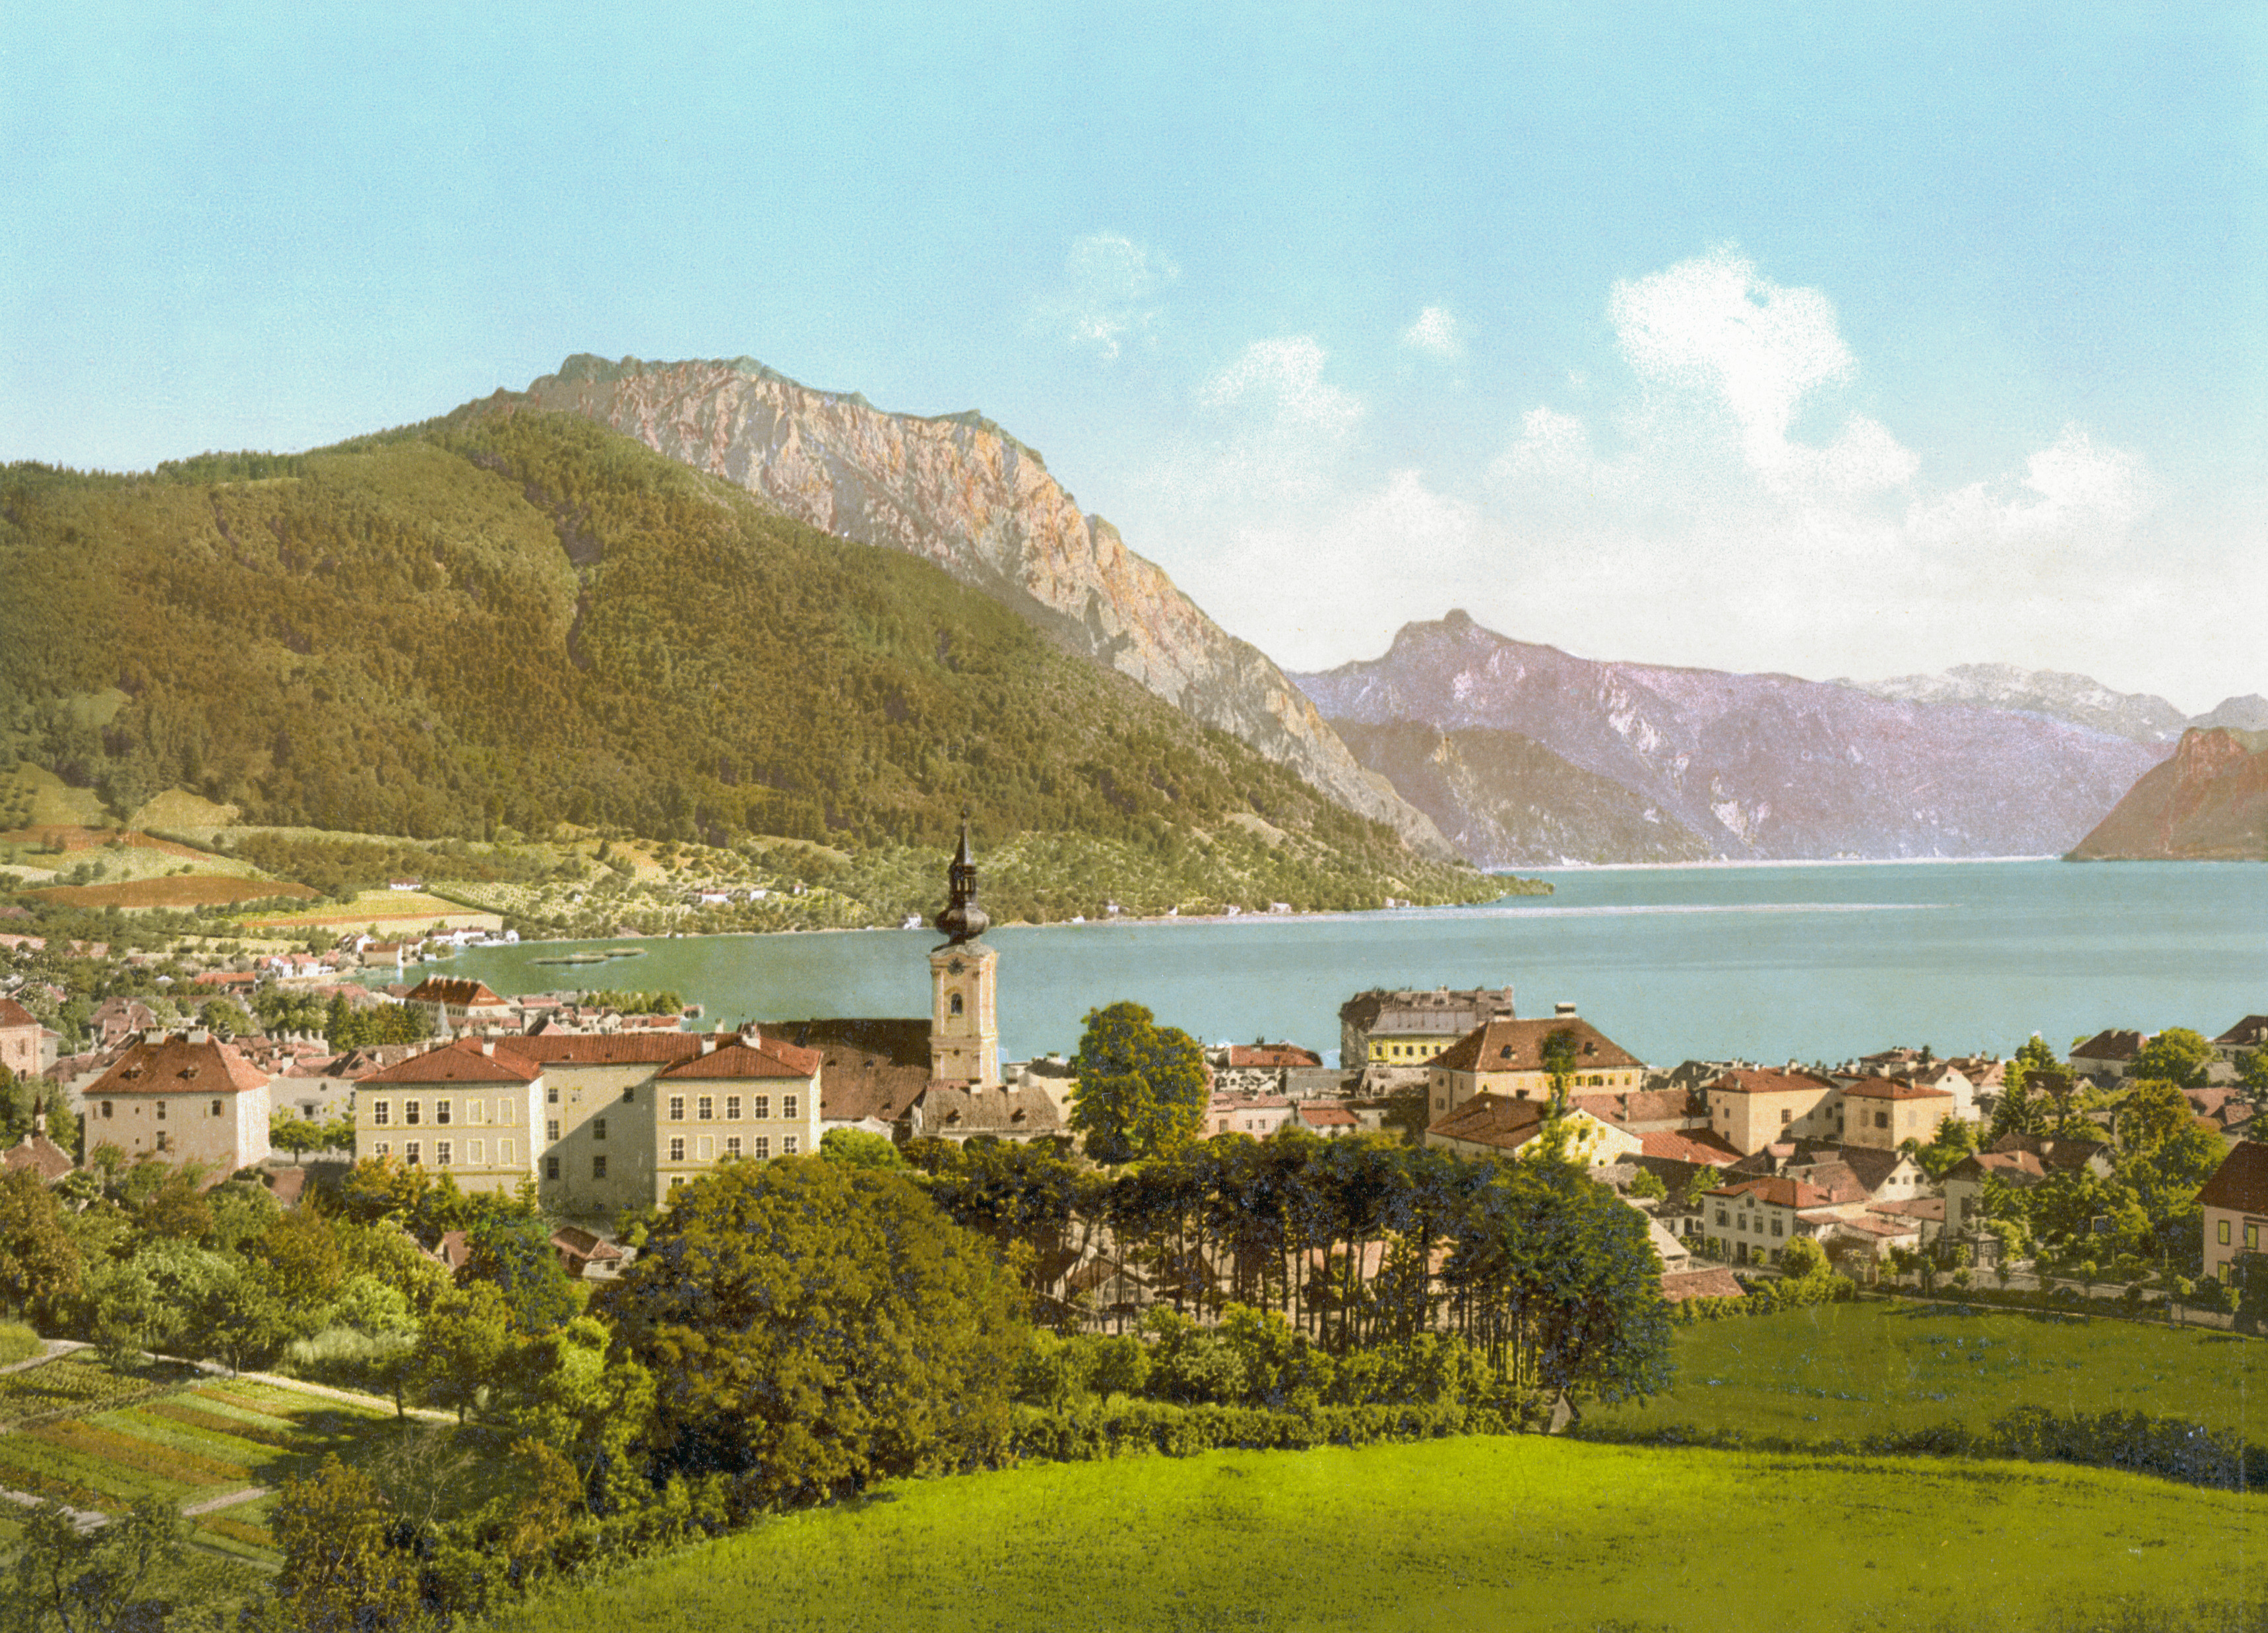 File:Gmunden Traunsee 1900.jpg - Wikimedia Commons